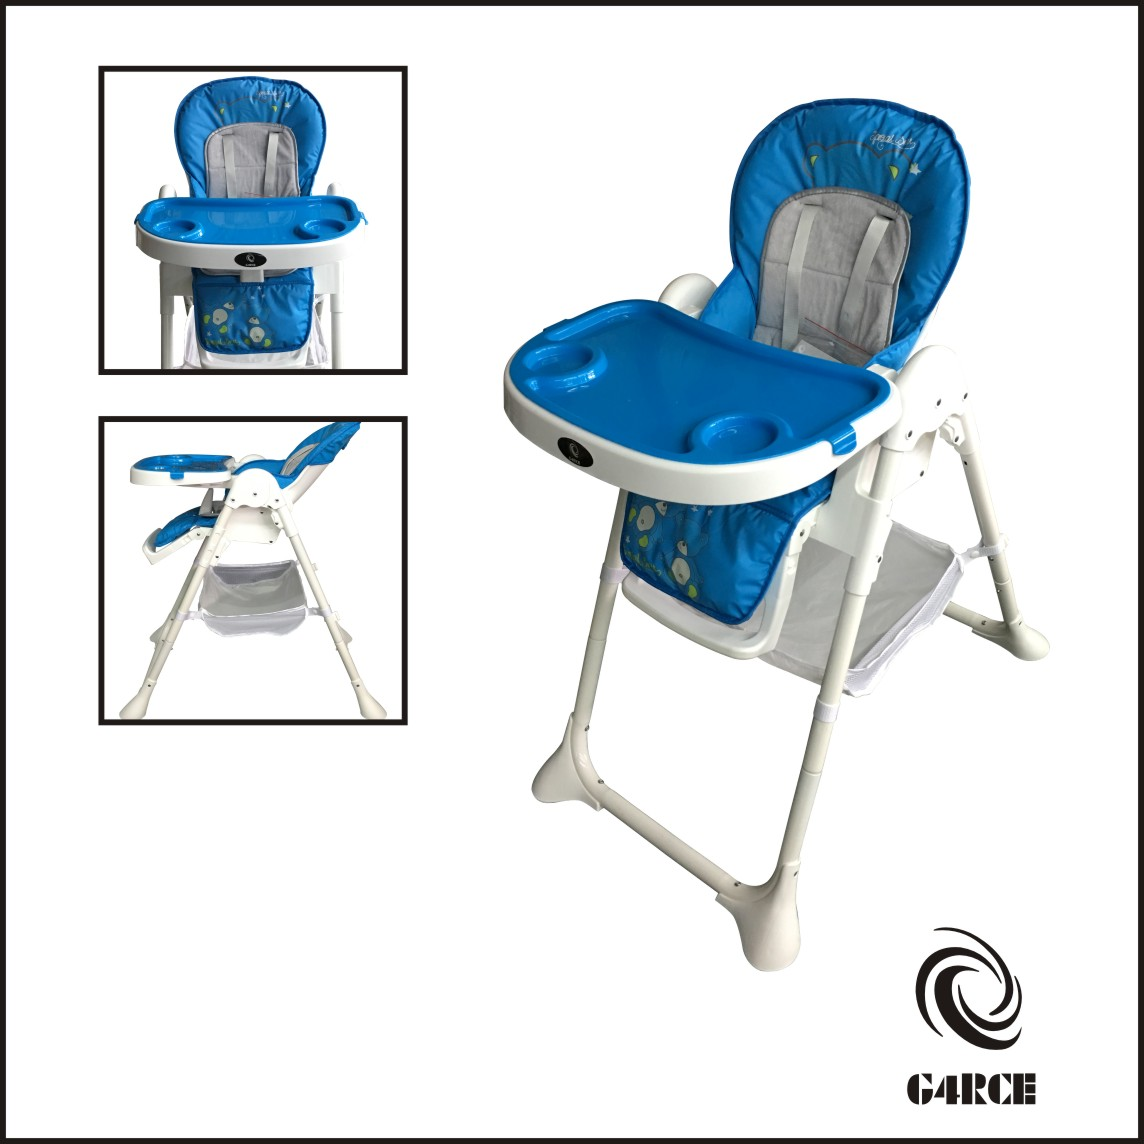 Details about Folding 3 In 1 Baby Toddler Infant Reclining High Chair Feeding Table Tray Blue